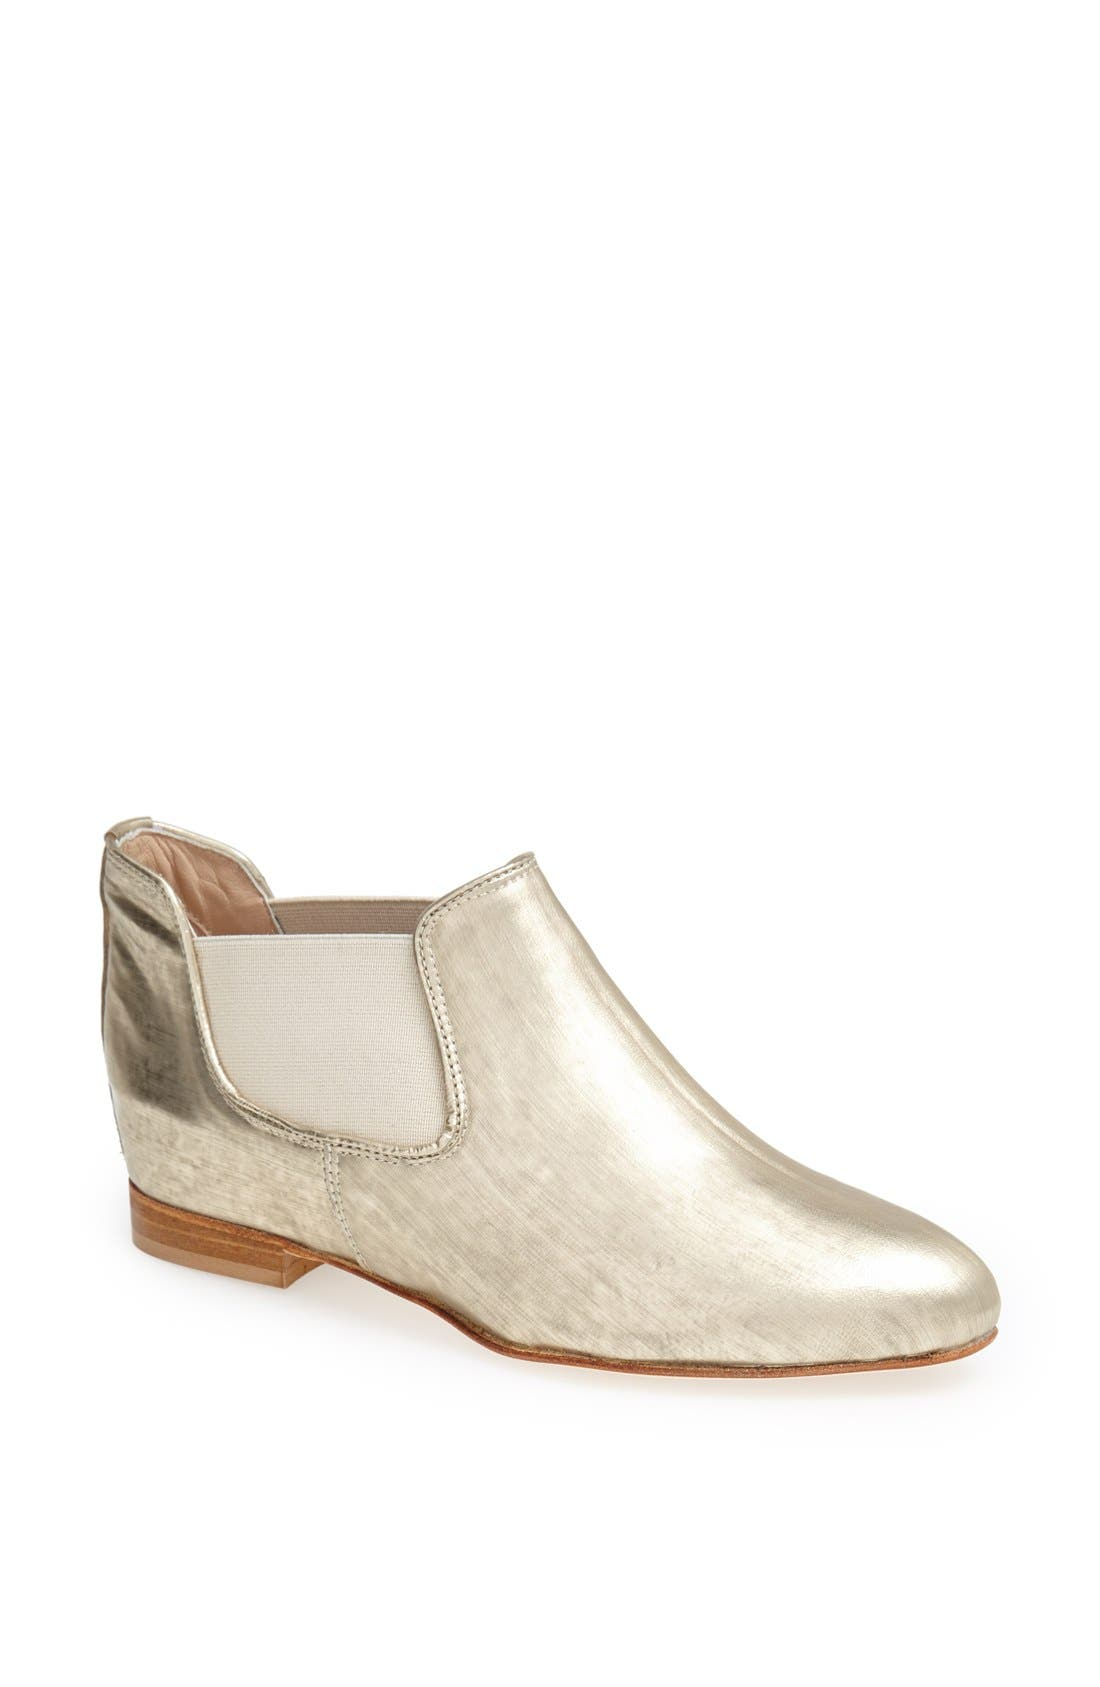 Alternate Image 1 Selected - Hego's Slip-On Ankle Boot